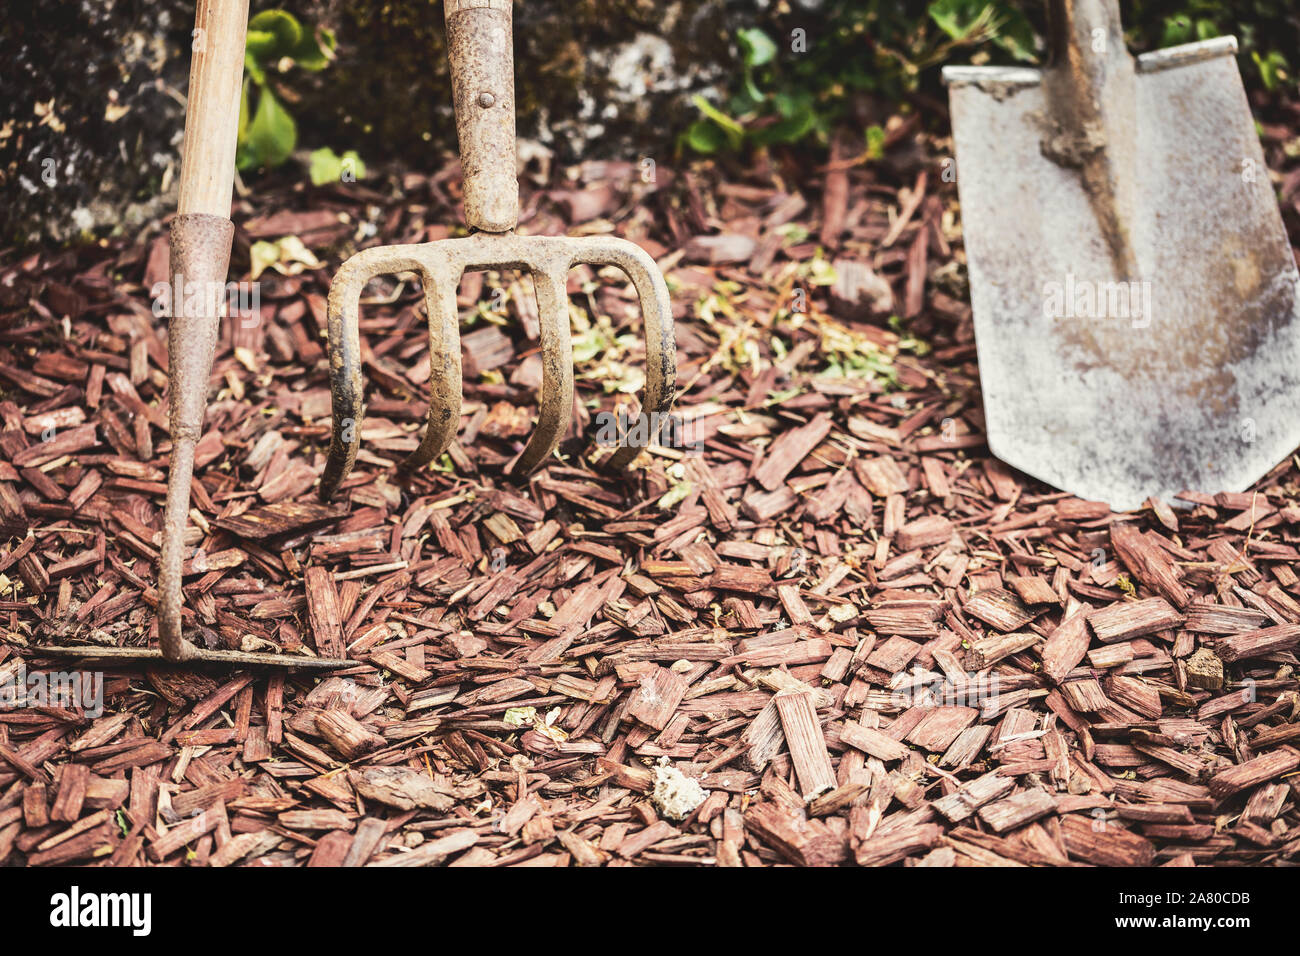 Old An Dirty Gardening Tools Or Garden Equipments Standing On The